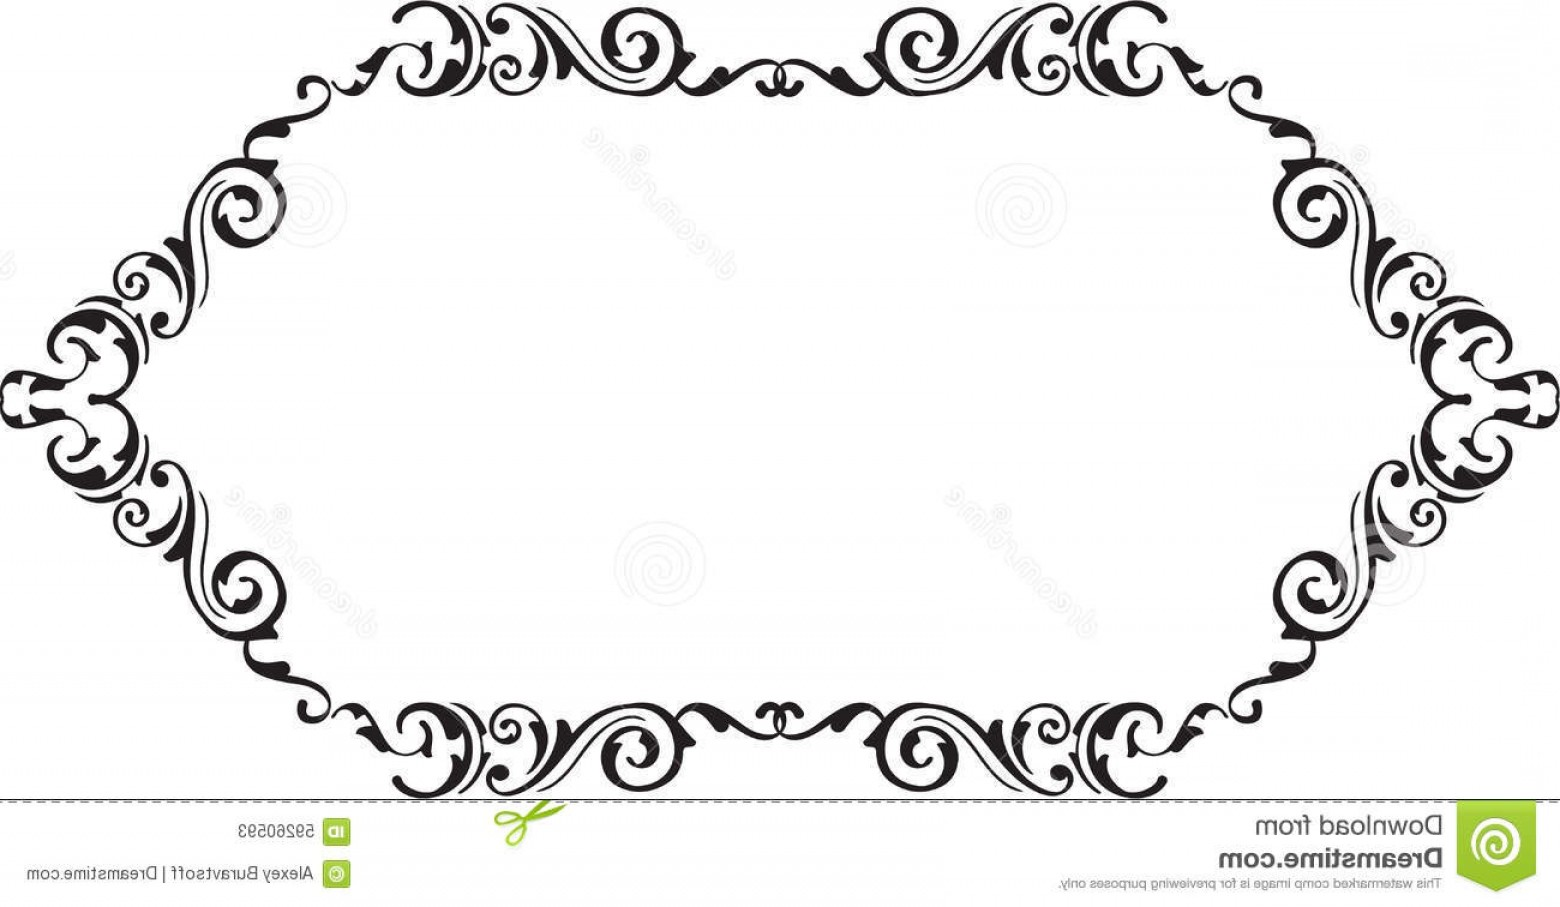 Florid Vector Simple: Stock Illustration Art Vintage Ornamente Scroll Fine Page White Image